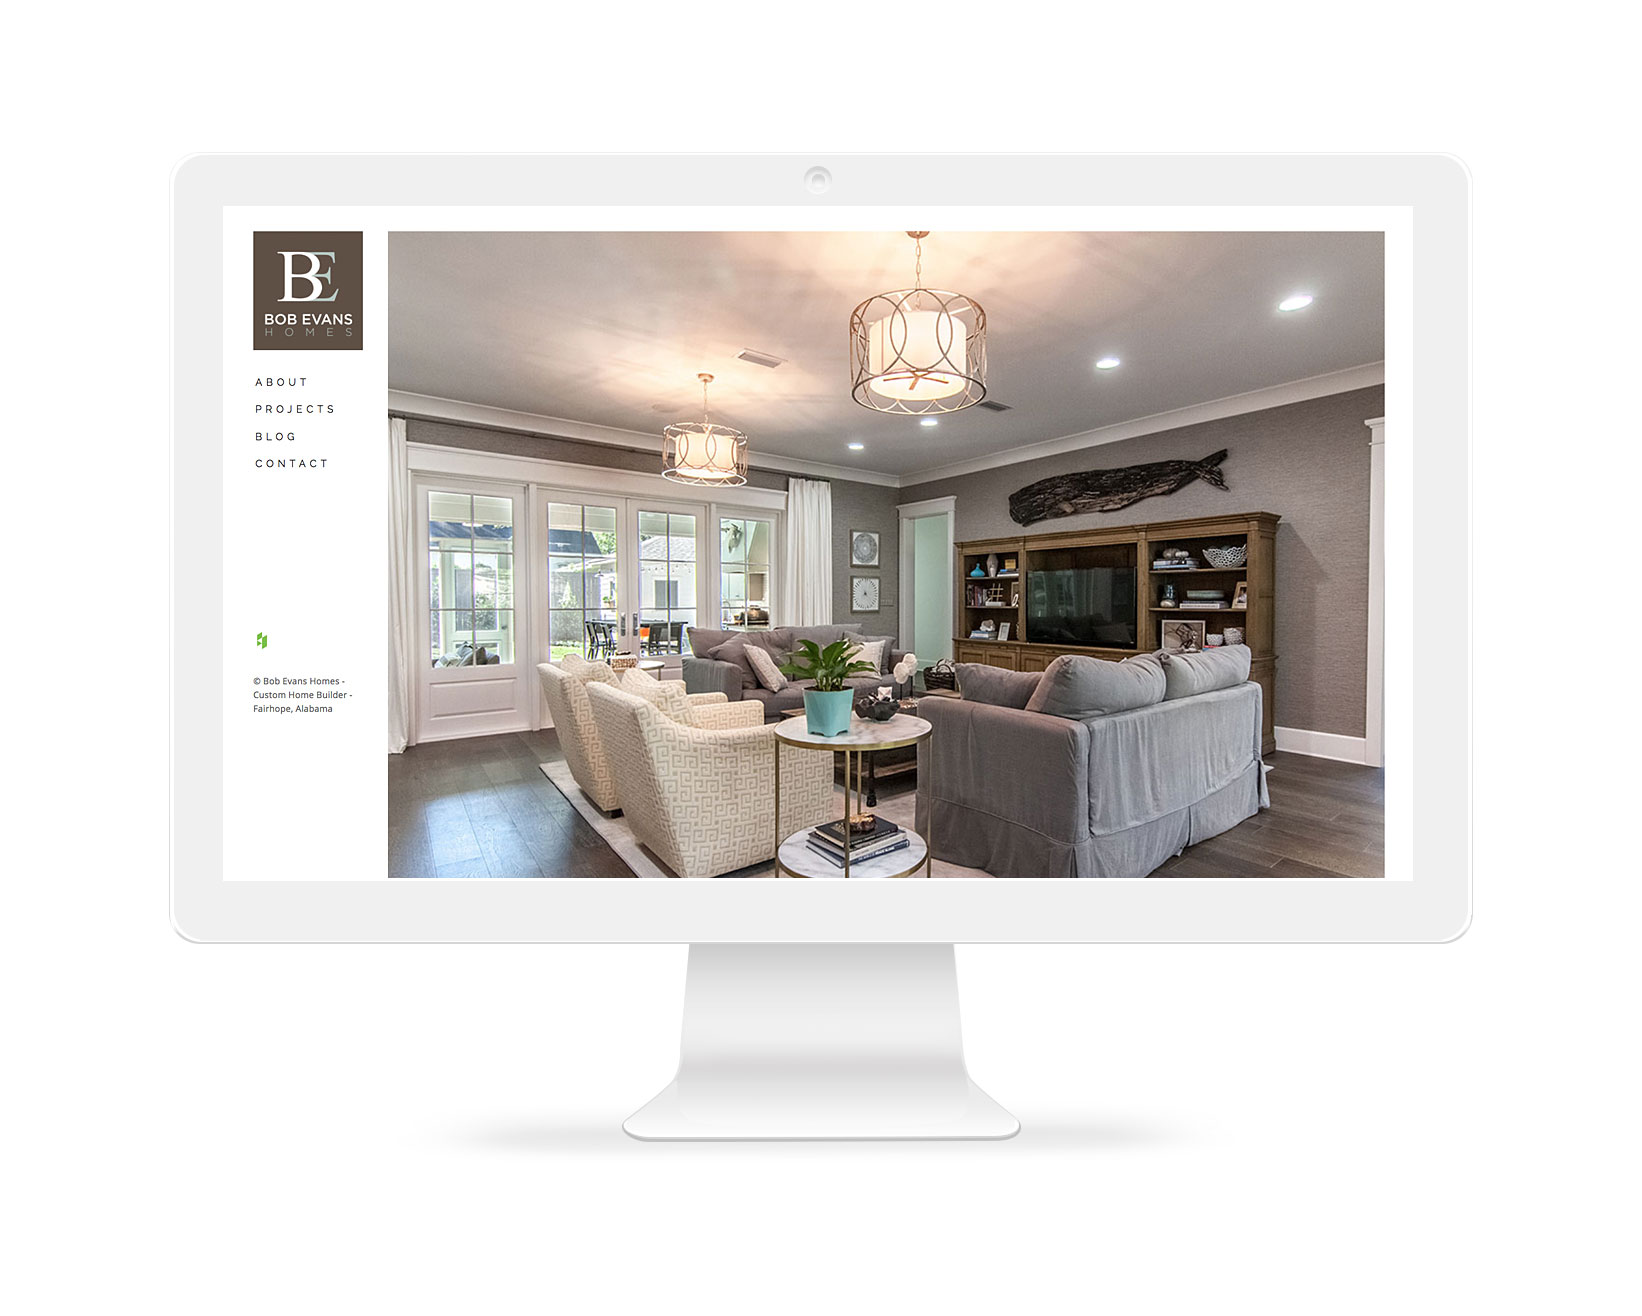 Builder Website Fairhope, Alabama